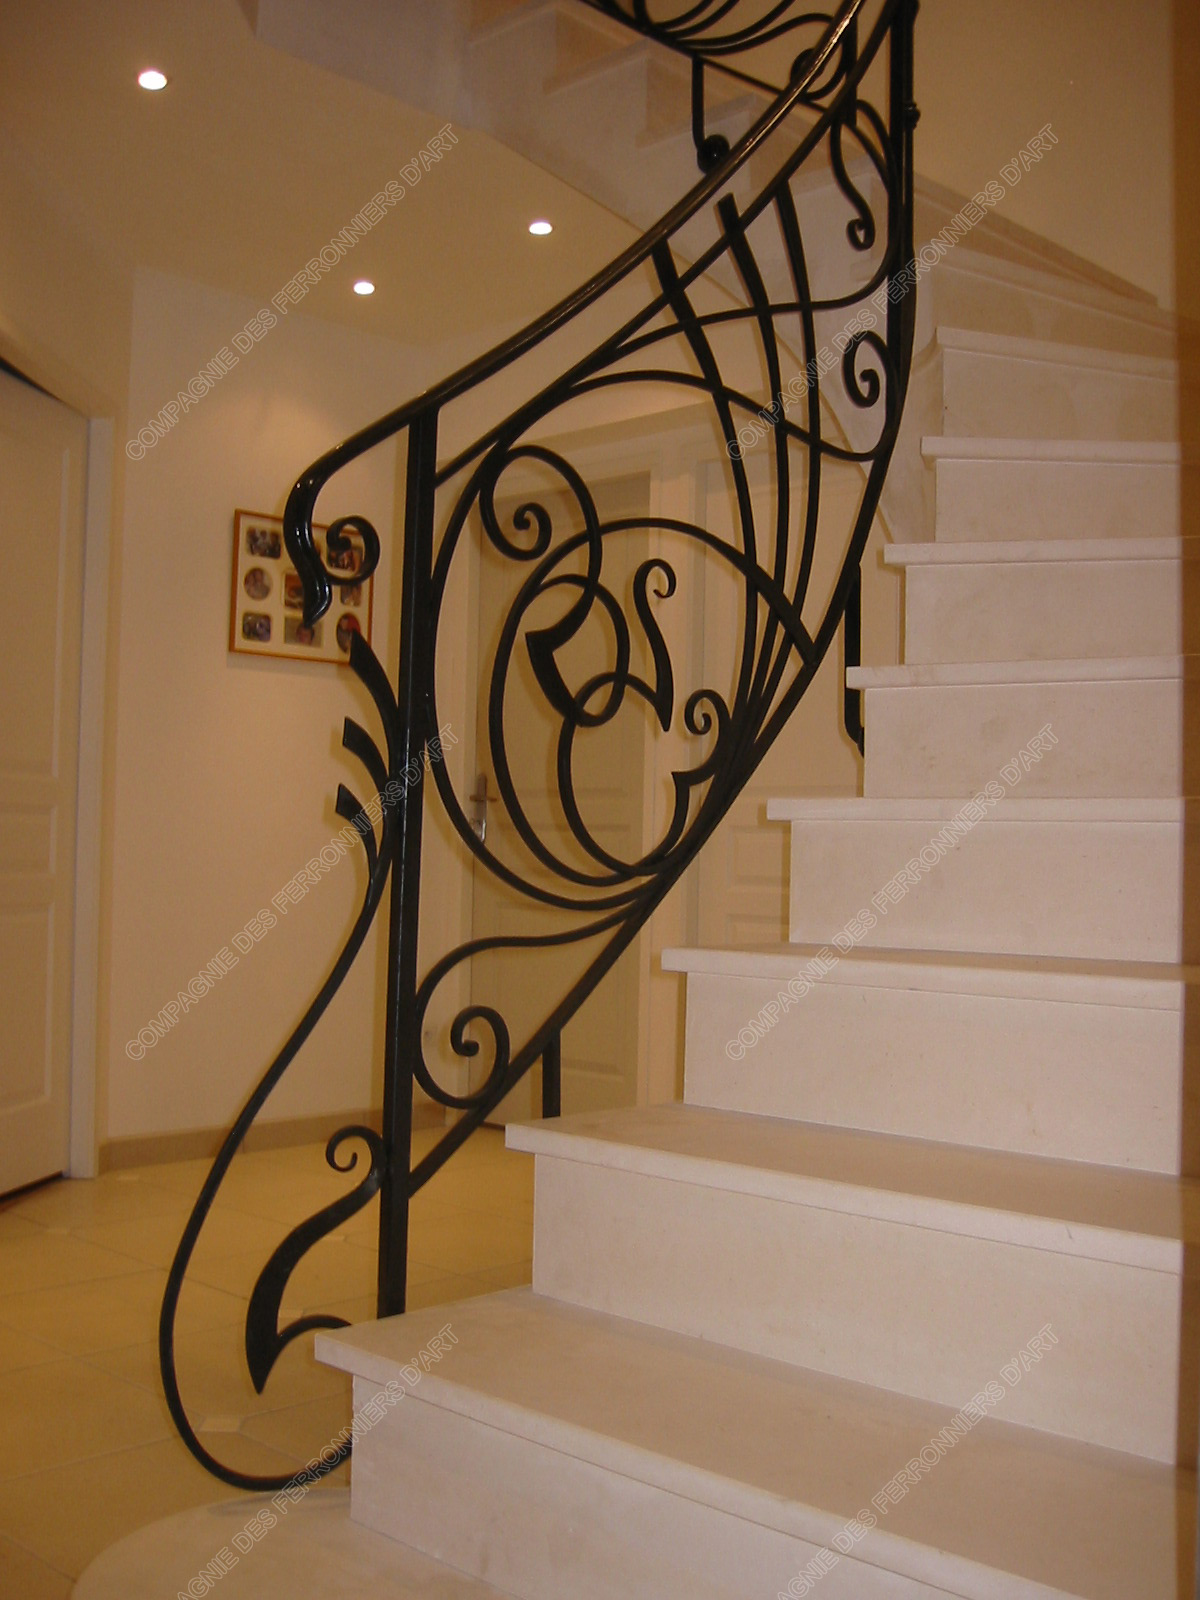 rampe d escalier originale une rampe descalier diy originale avec une corde marine par with. Black Bedroom Furniture Sets. Home Design Ideas